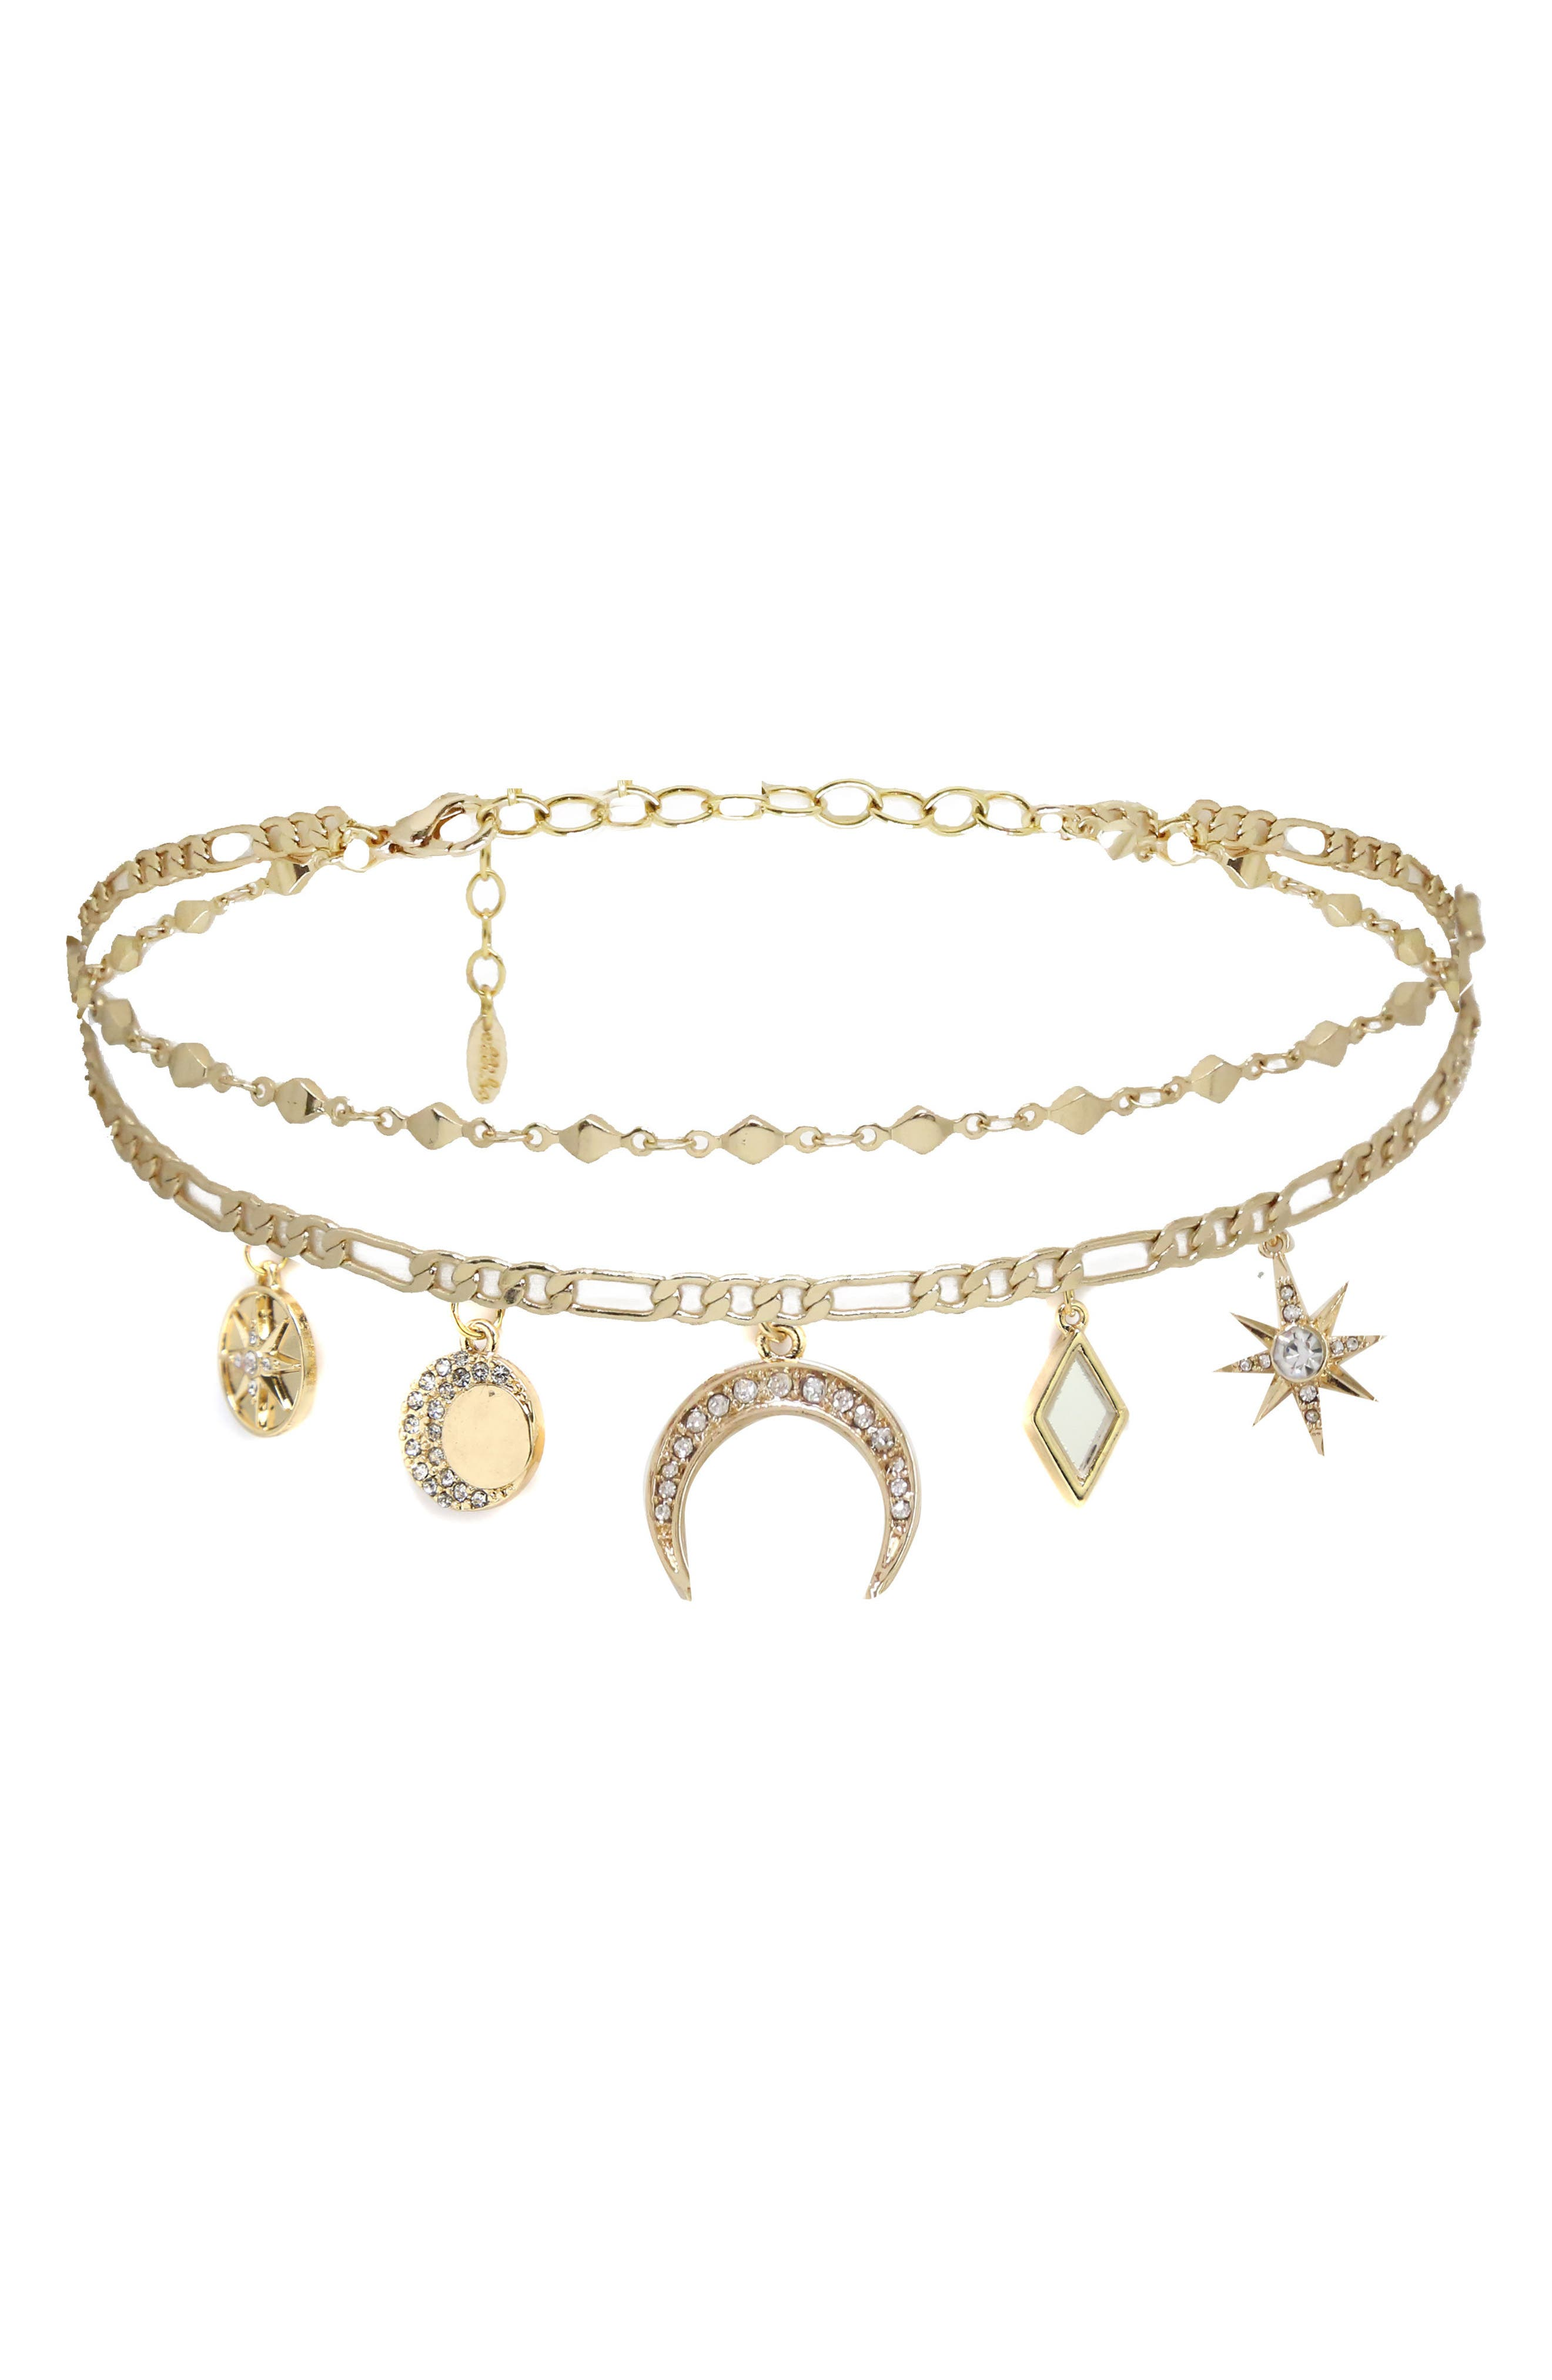 Mirror Charm Choker Necklace,                         Main,                         color, 710